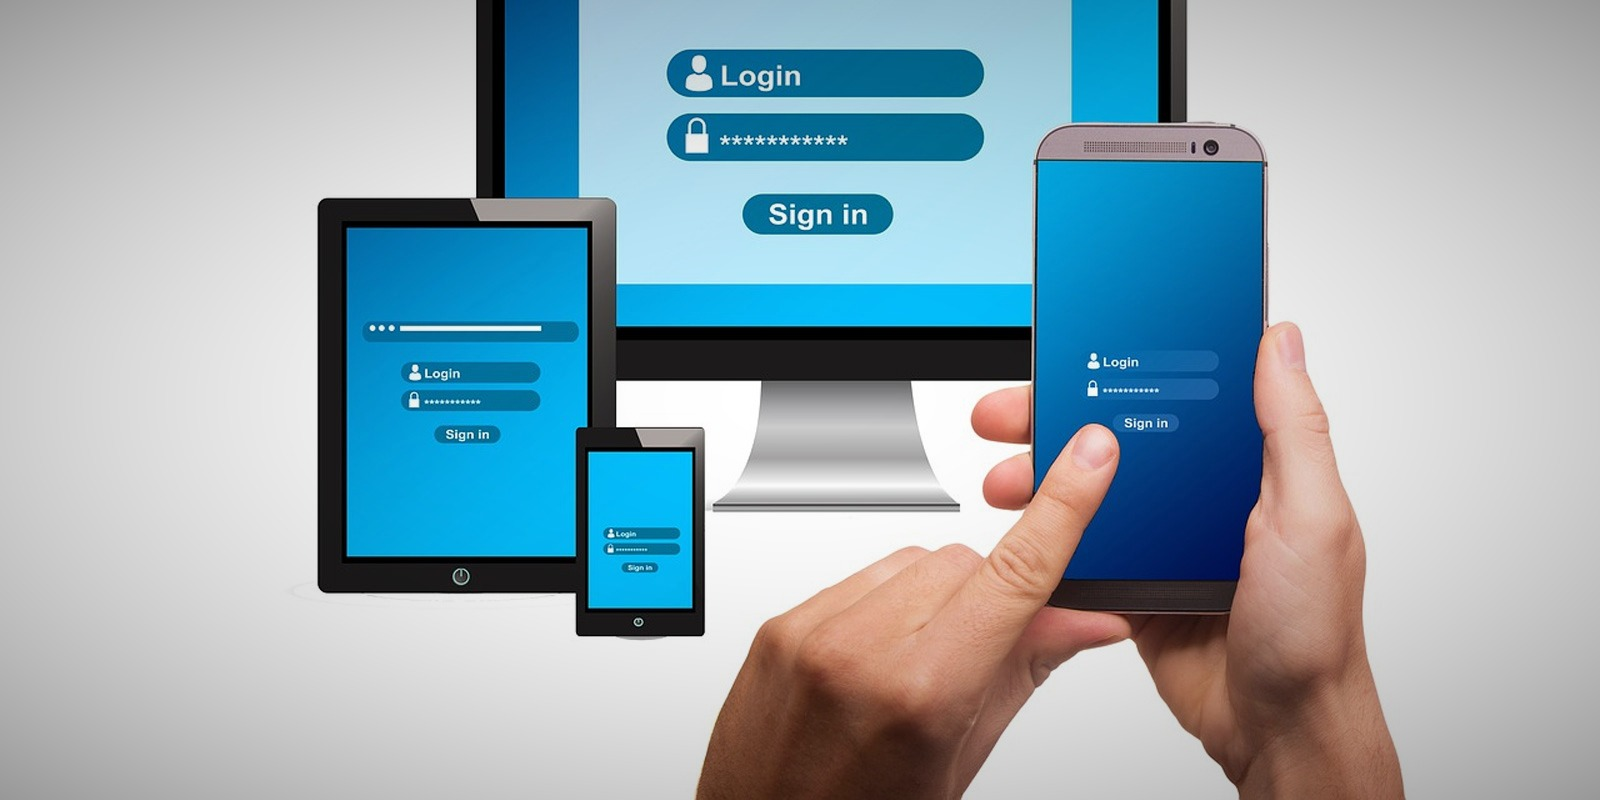 Microsoft's new password manager works across Edge, Chrome, and mobile devices